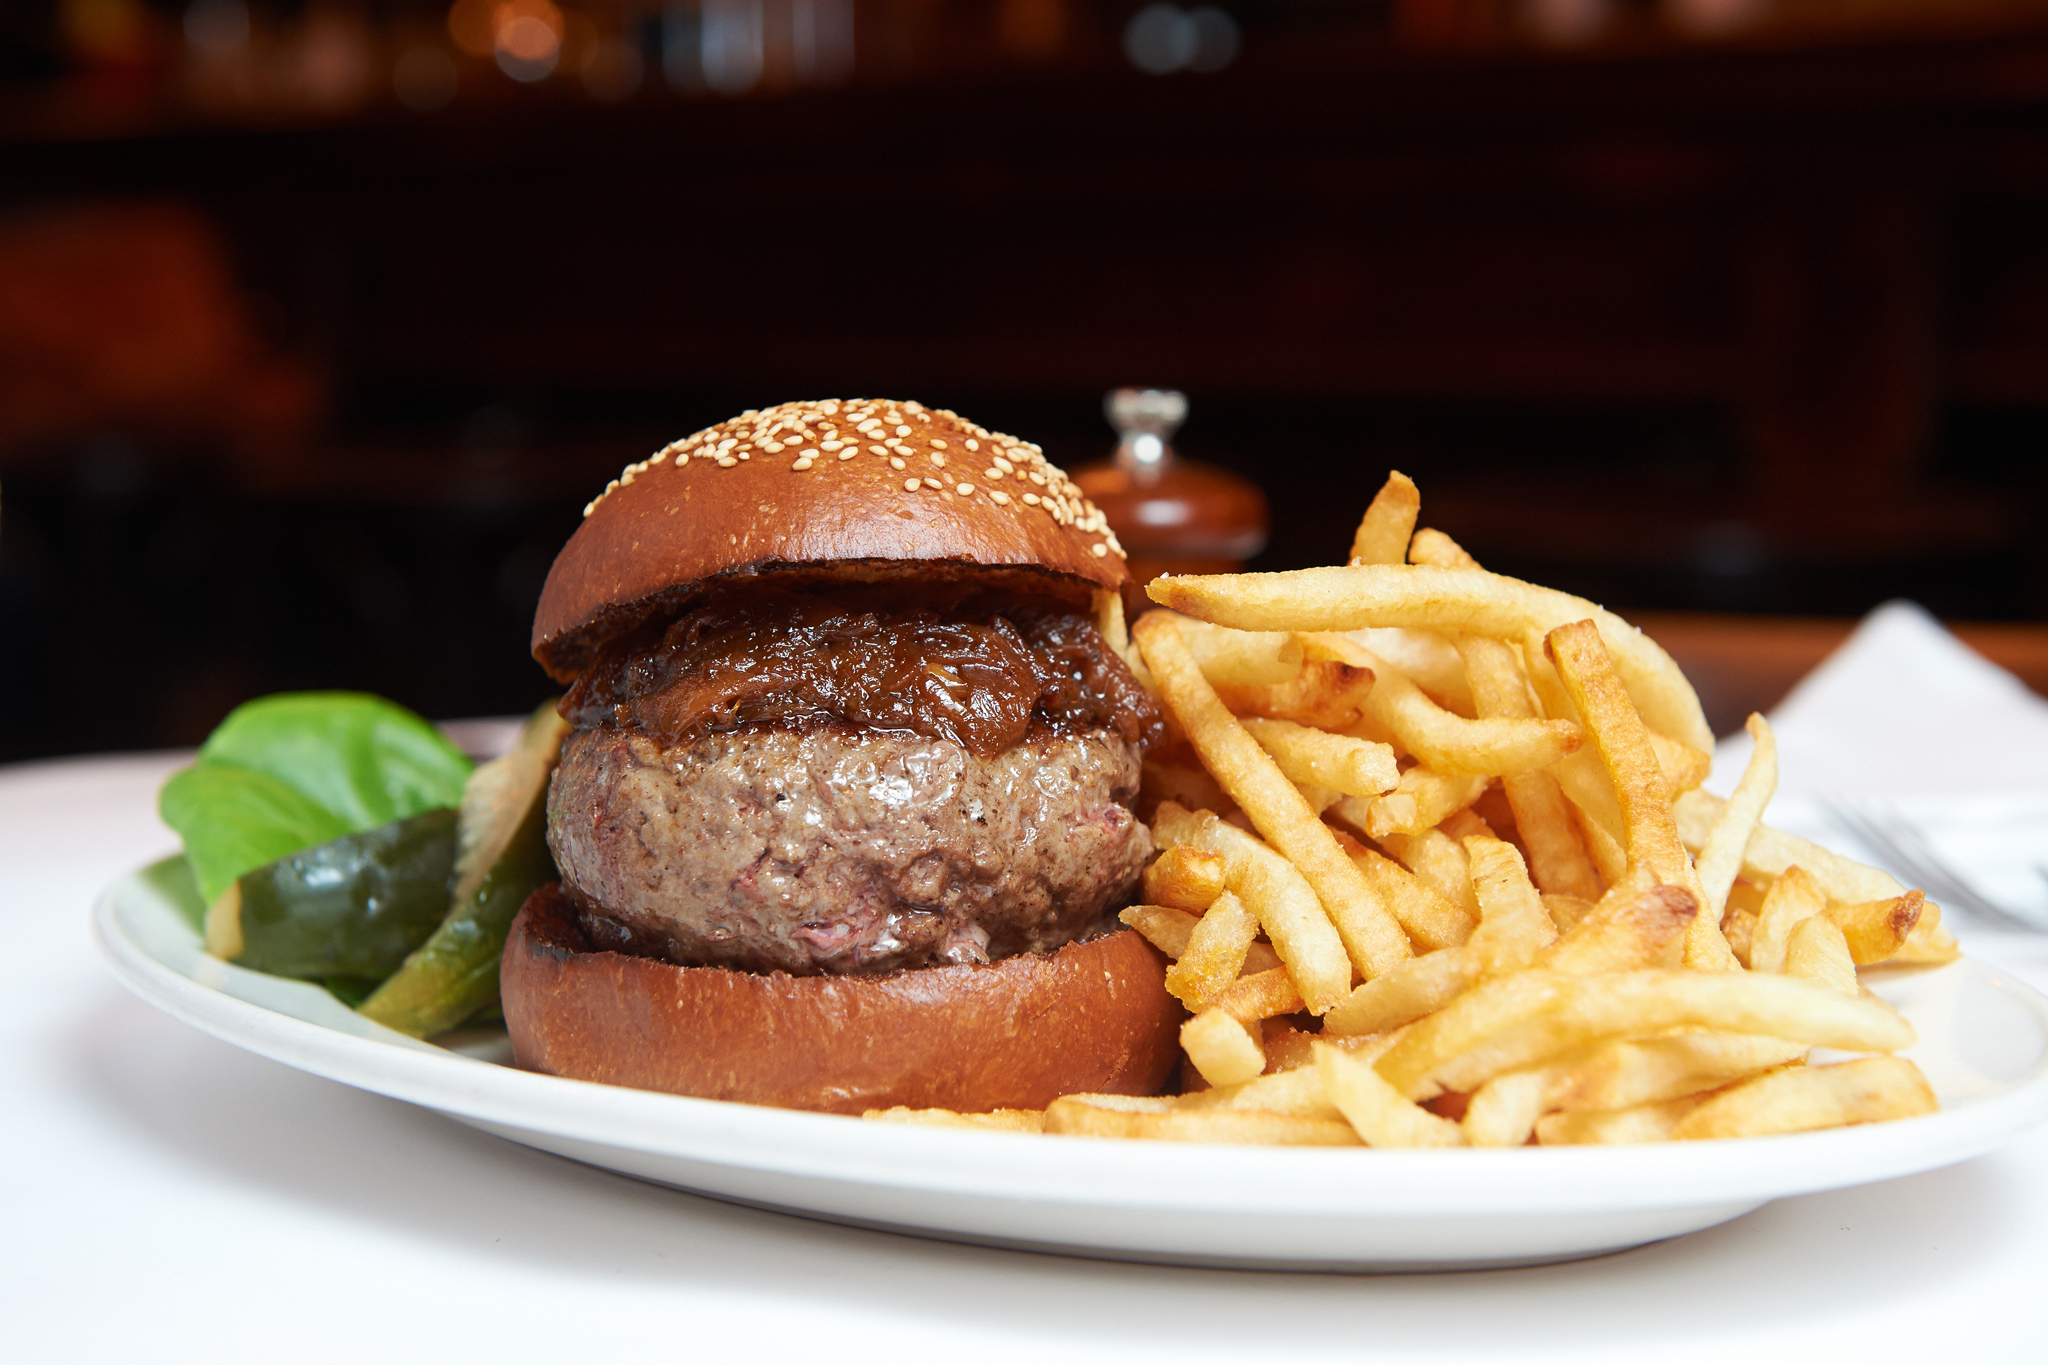 100 Best Restaurants In Nyc You Need To Try French Fries 2000 150 Gr Black Label Burger At Minetta Tavern